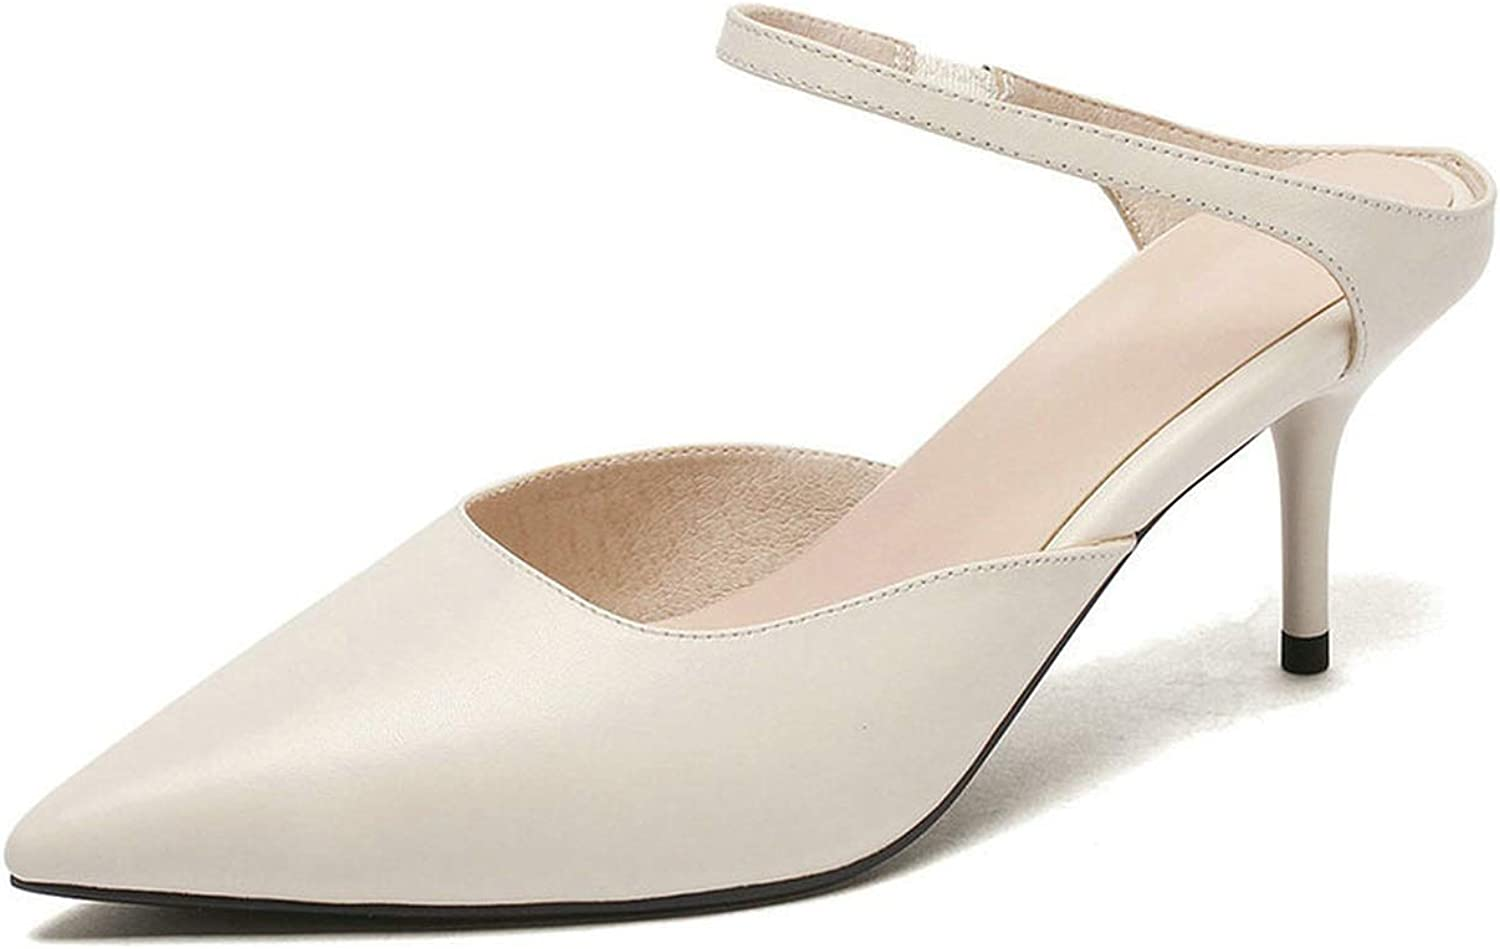 Easy-S-E-H Cow Leather +Pu Thin High Heel Pointed Toe Slingback Elegant Ladies Pumps Elegant Summer Size 34-40